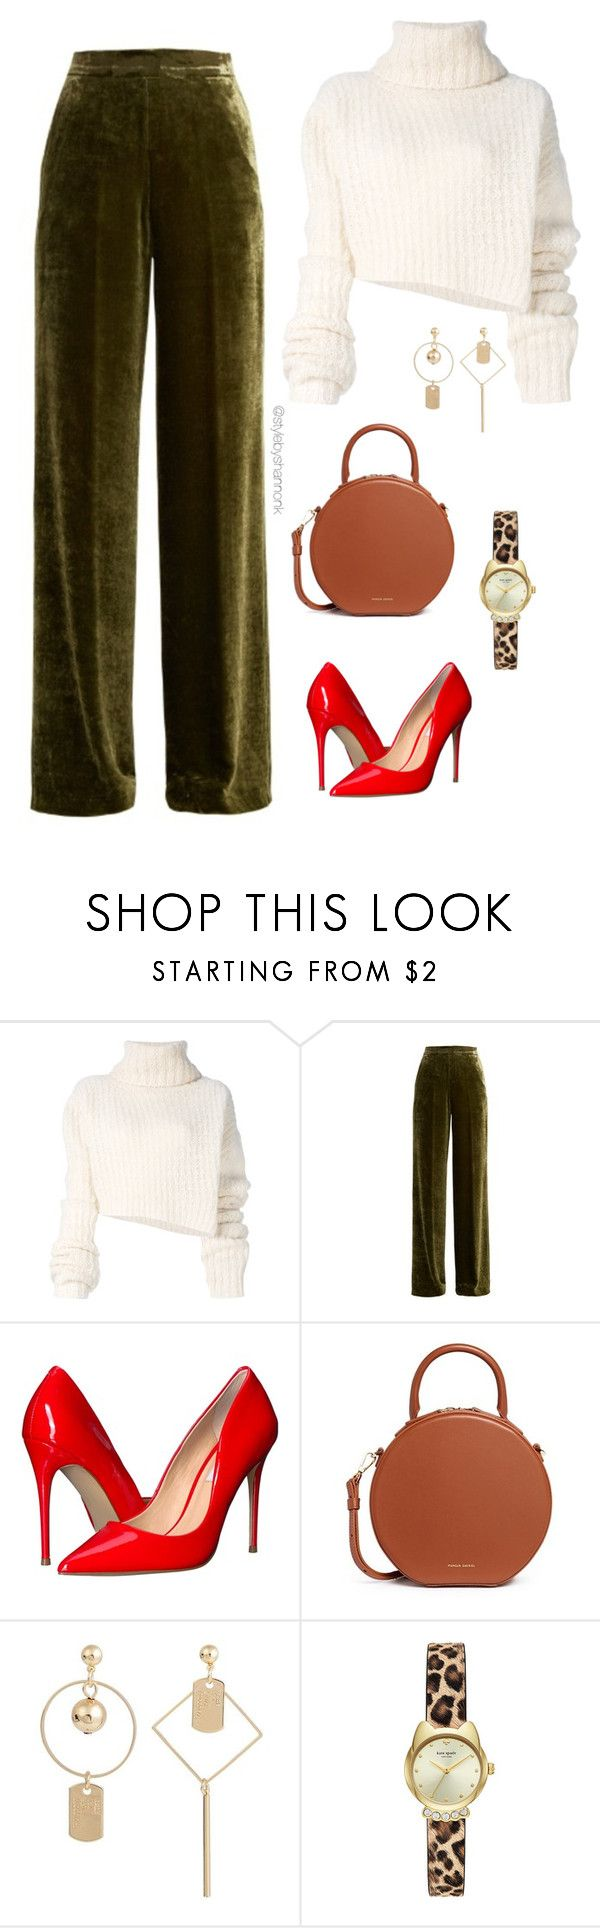 """Women's Fashion"" by stylebyshannonk ❤ liked on Polyvore featuring Ann Demeulemeester, Etro, Steve Madden and Mansur Gavriel"